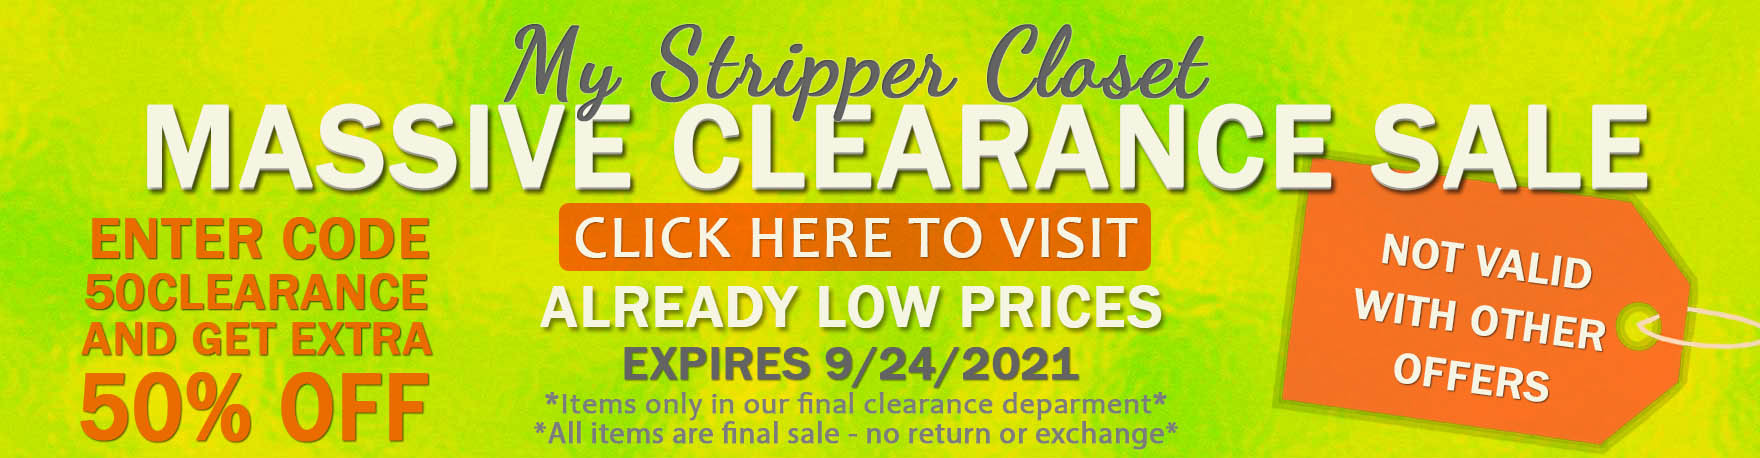 50% OFF CLEARANCE WITH CODE 50CLEARANCE MYSTRIPPERCLOSET.COM